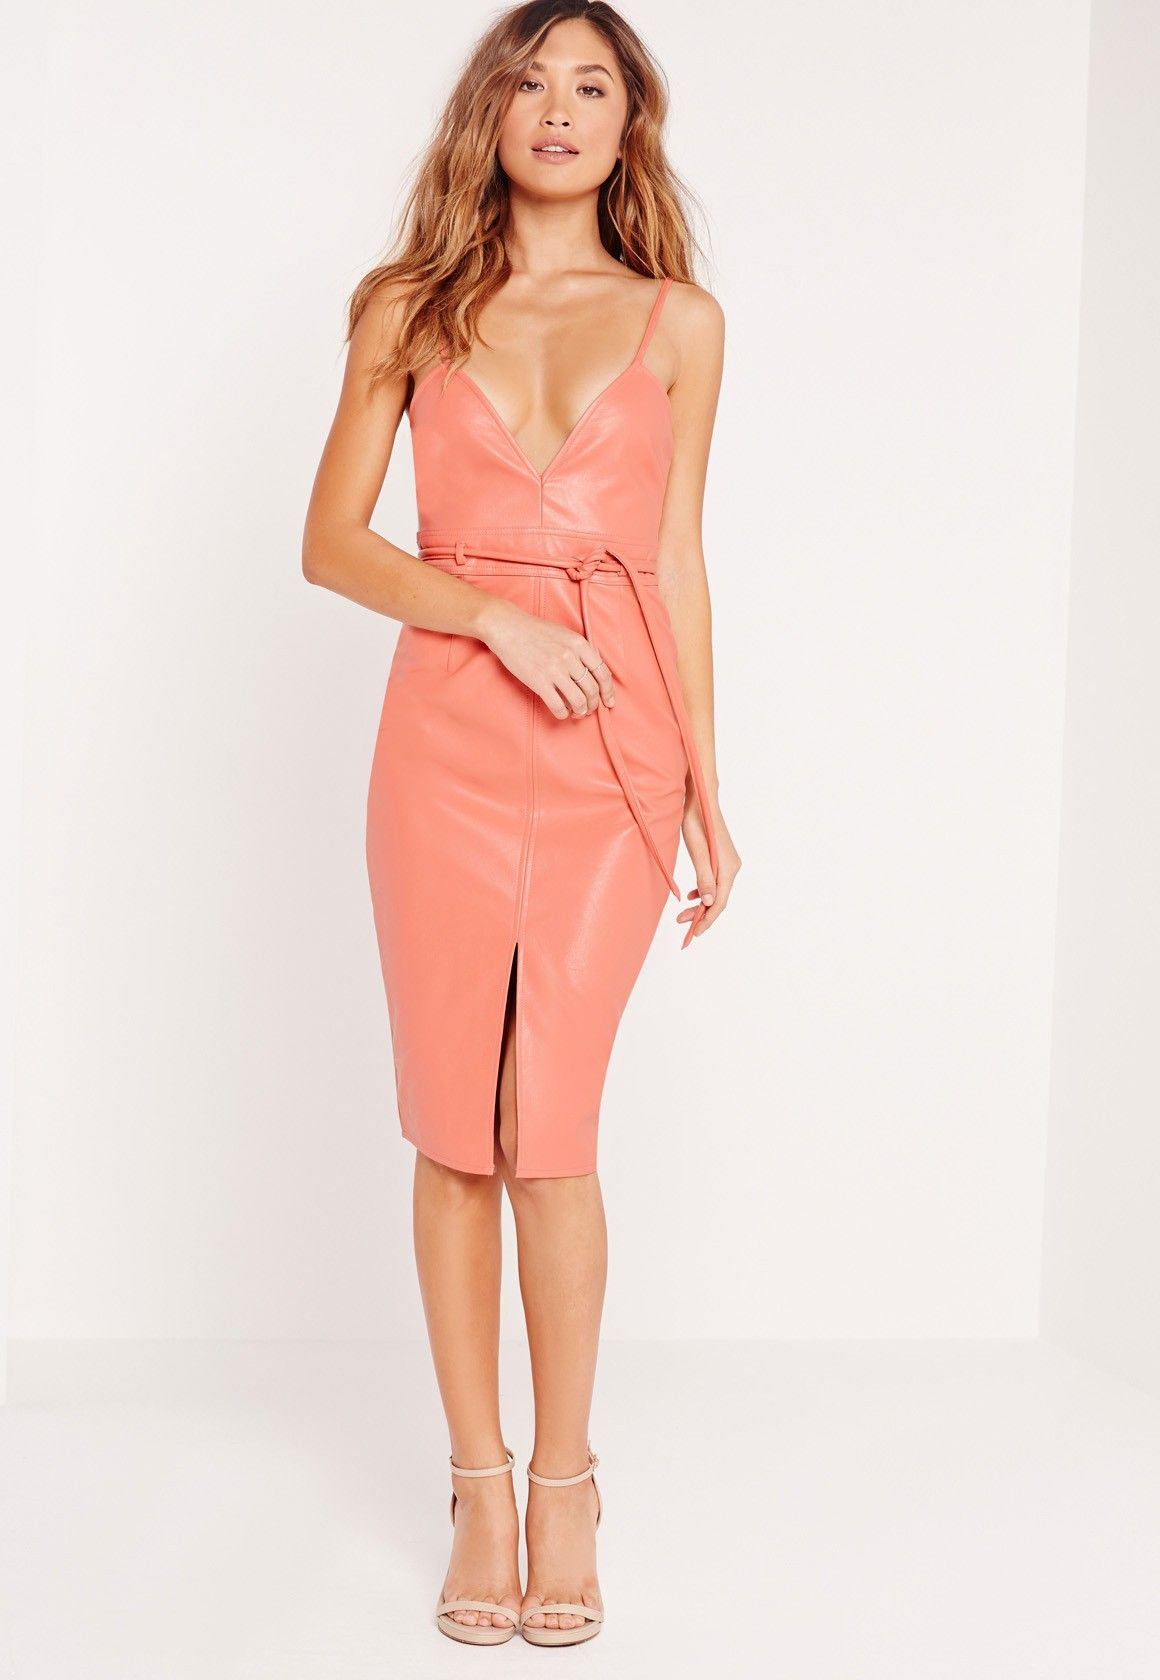 Faux Leather Strappy Bodycon Dress Salmon   cyrielle crushes   Robe ... 683dcab73e6d